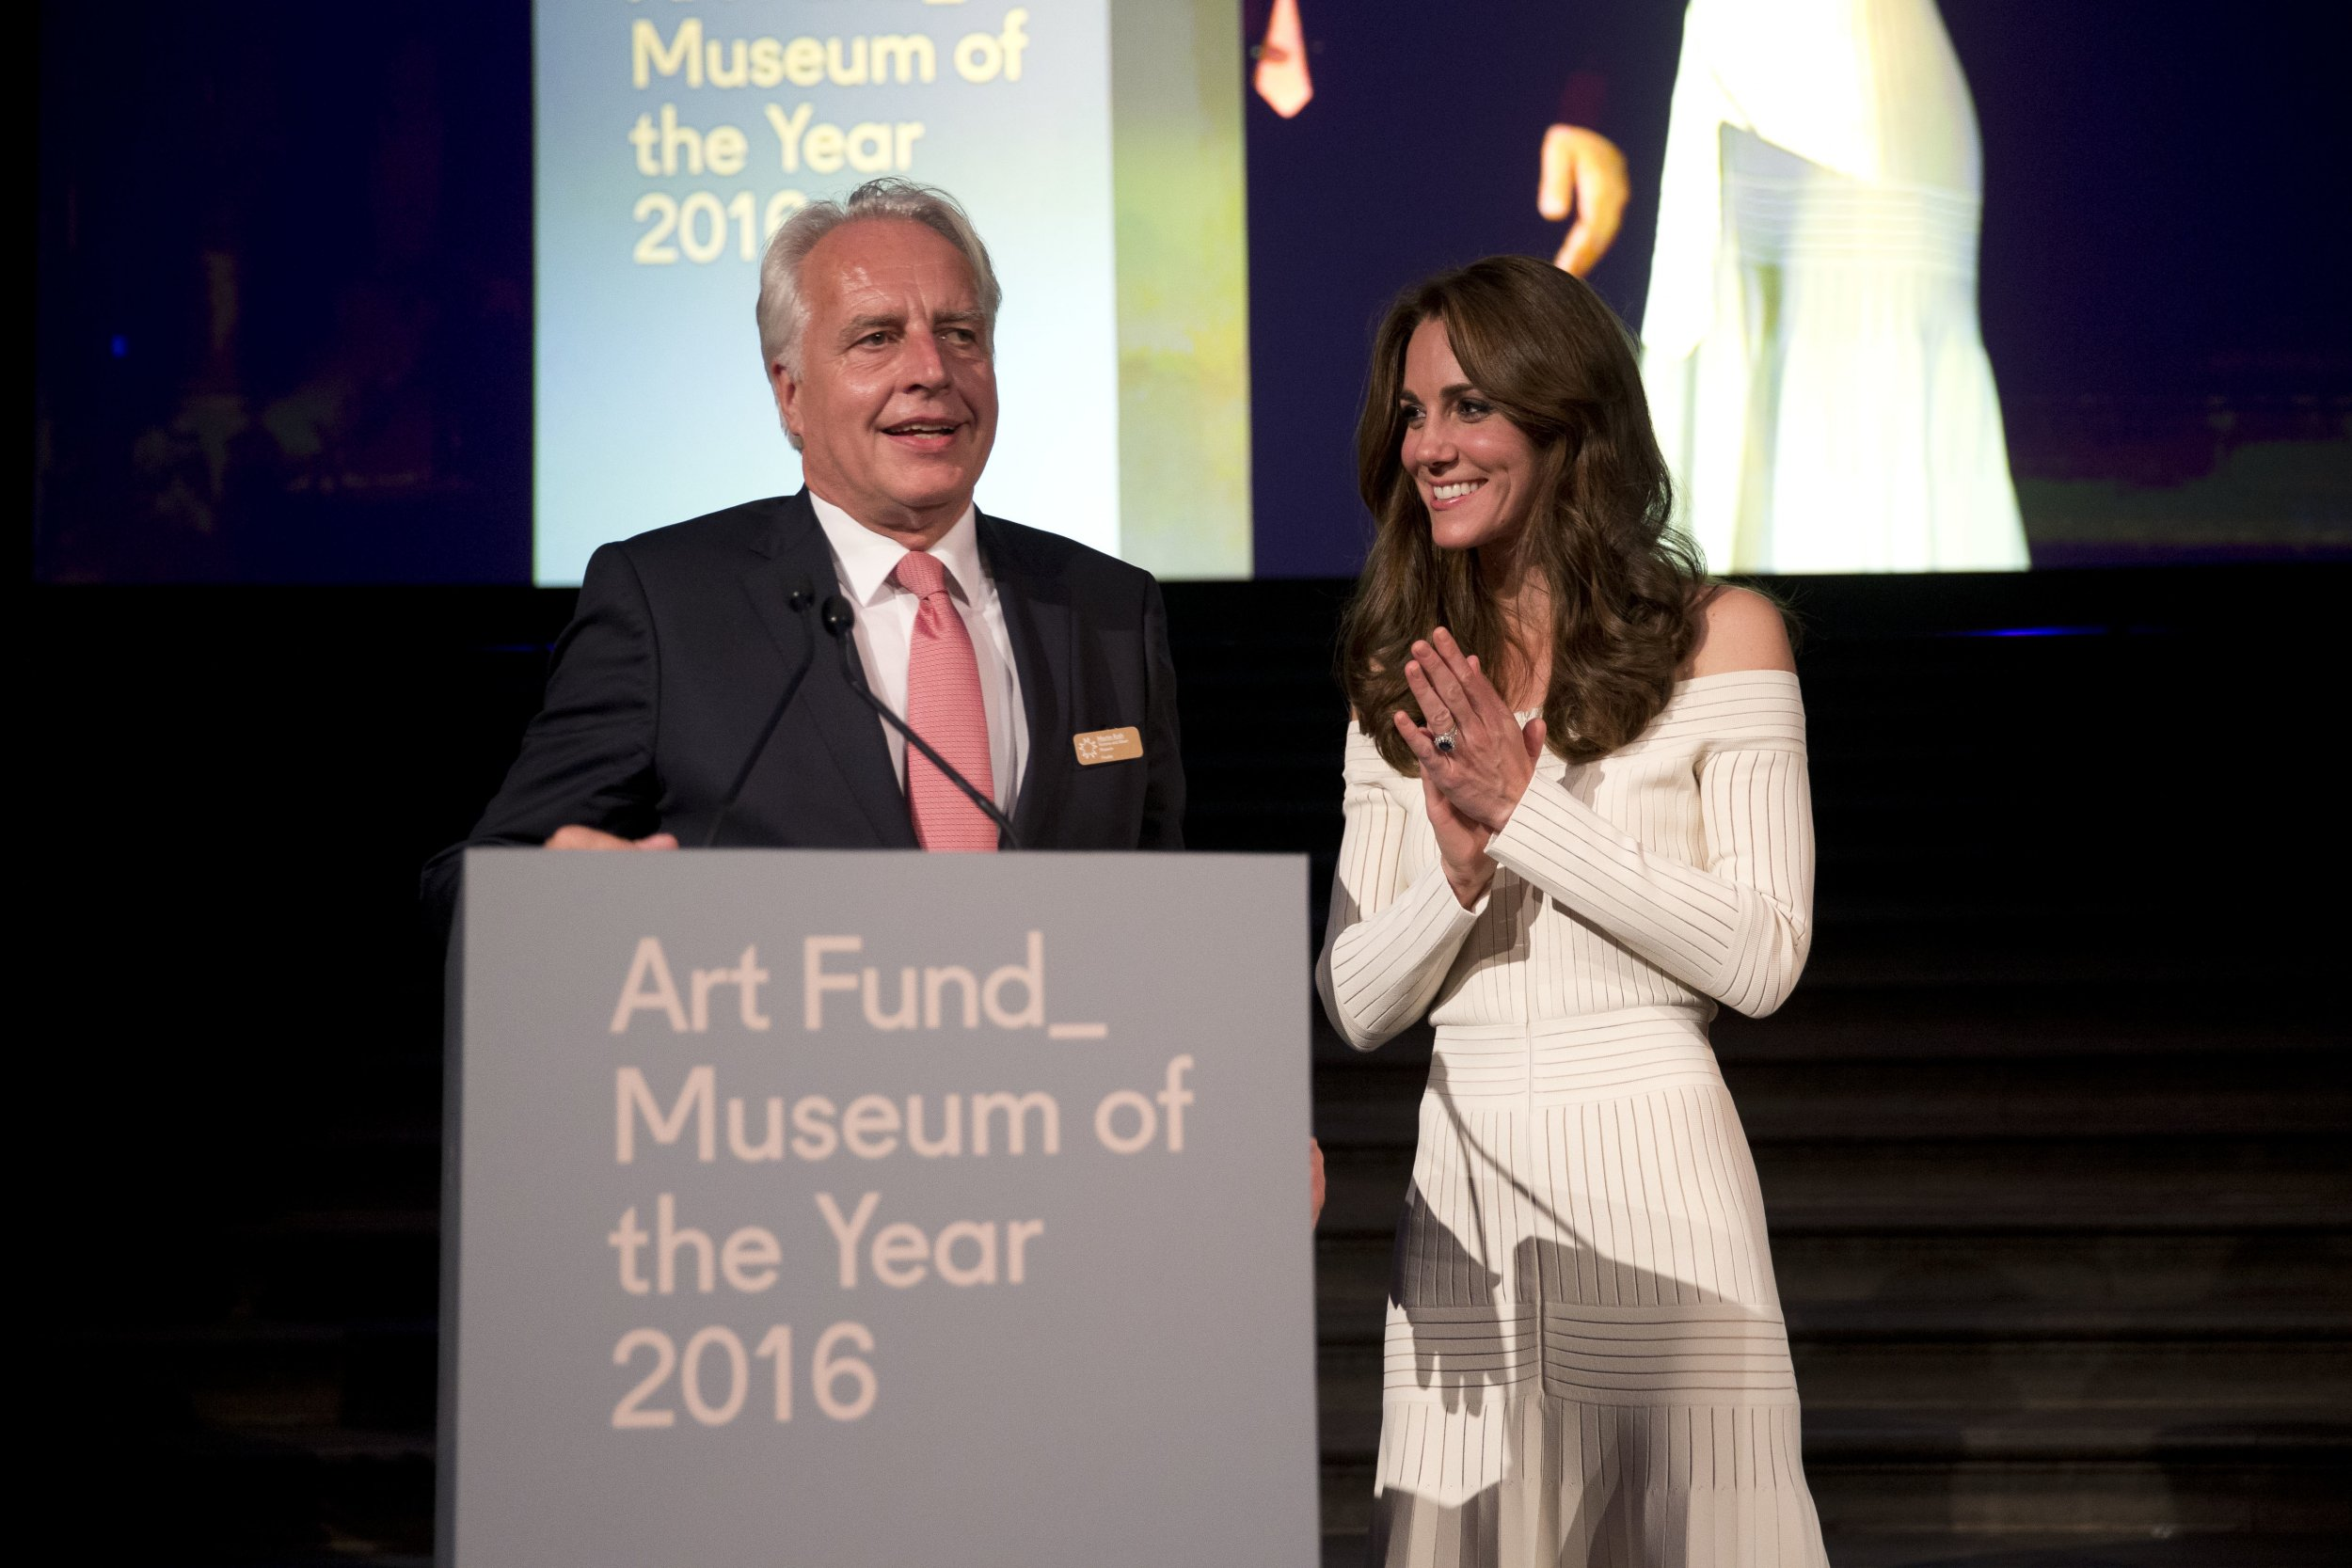 Museum of the Year - Kate Middleton